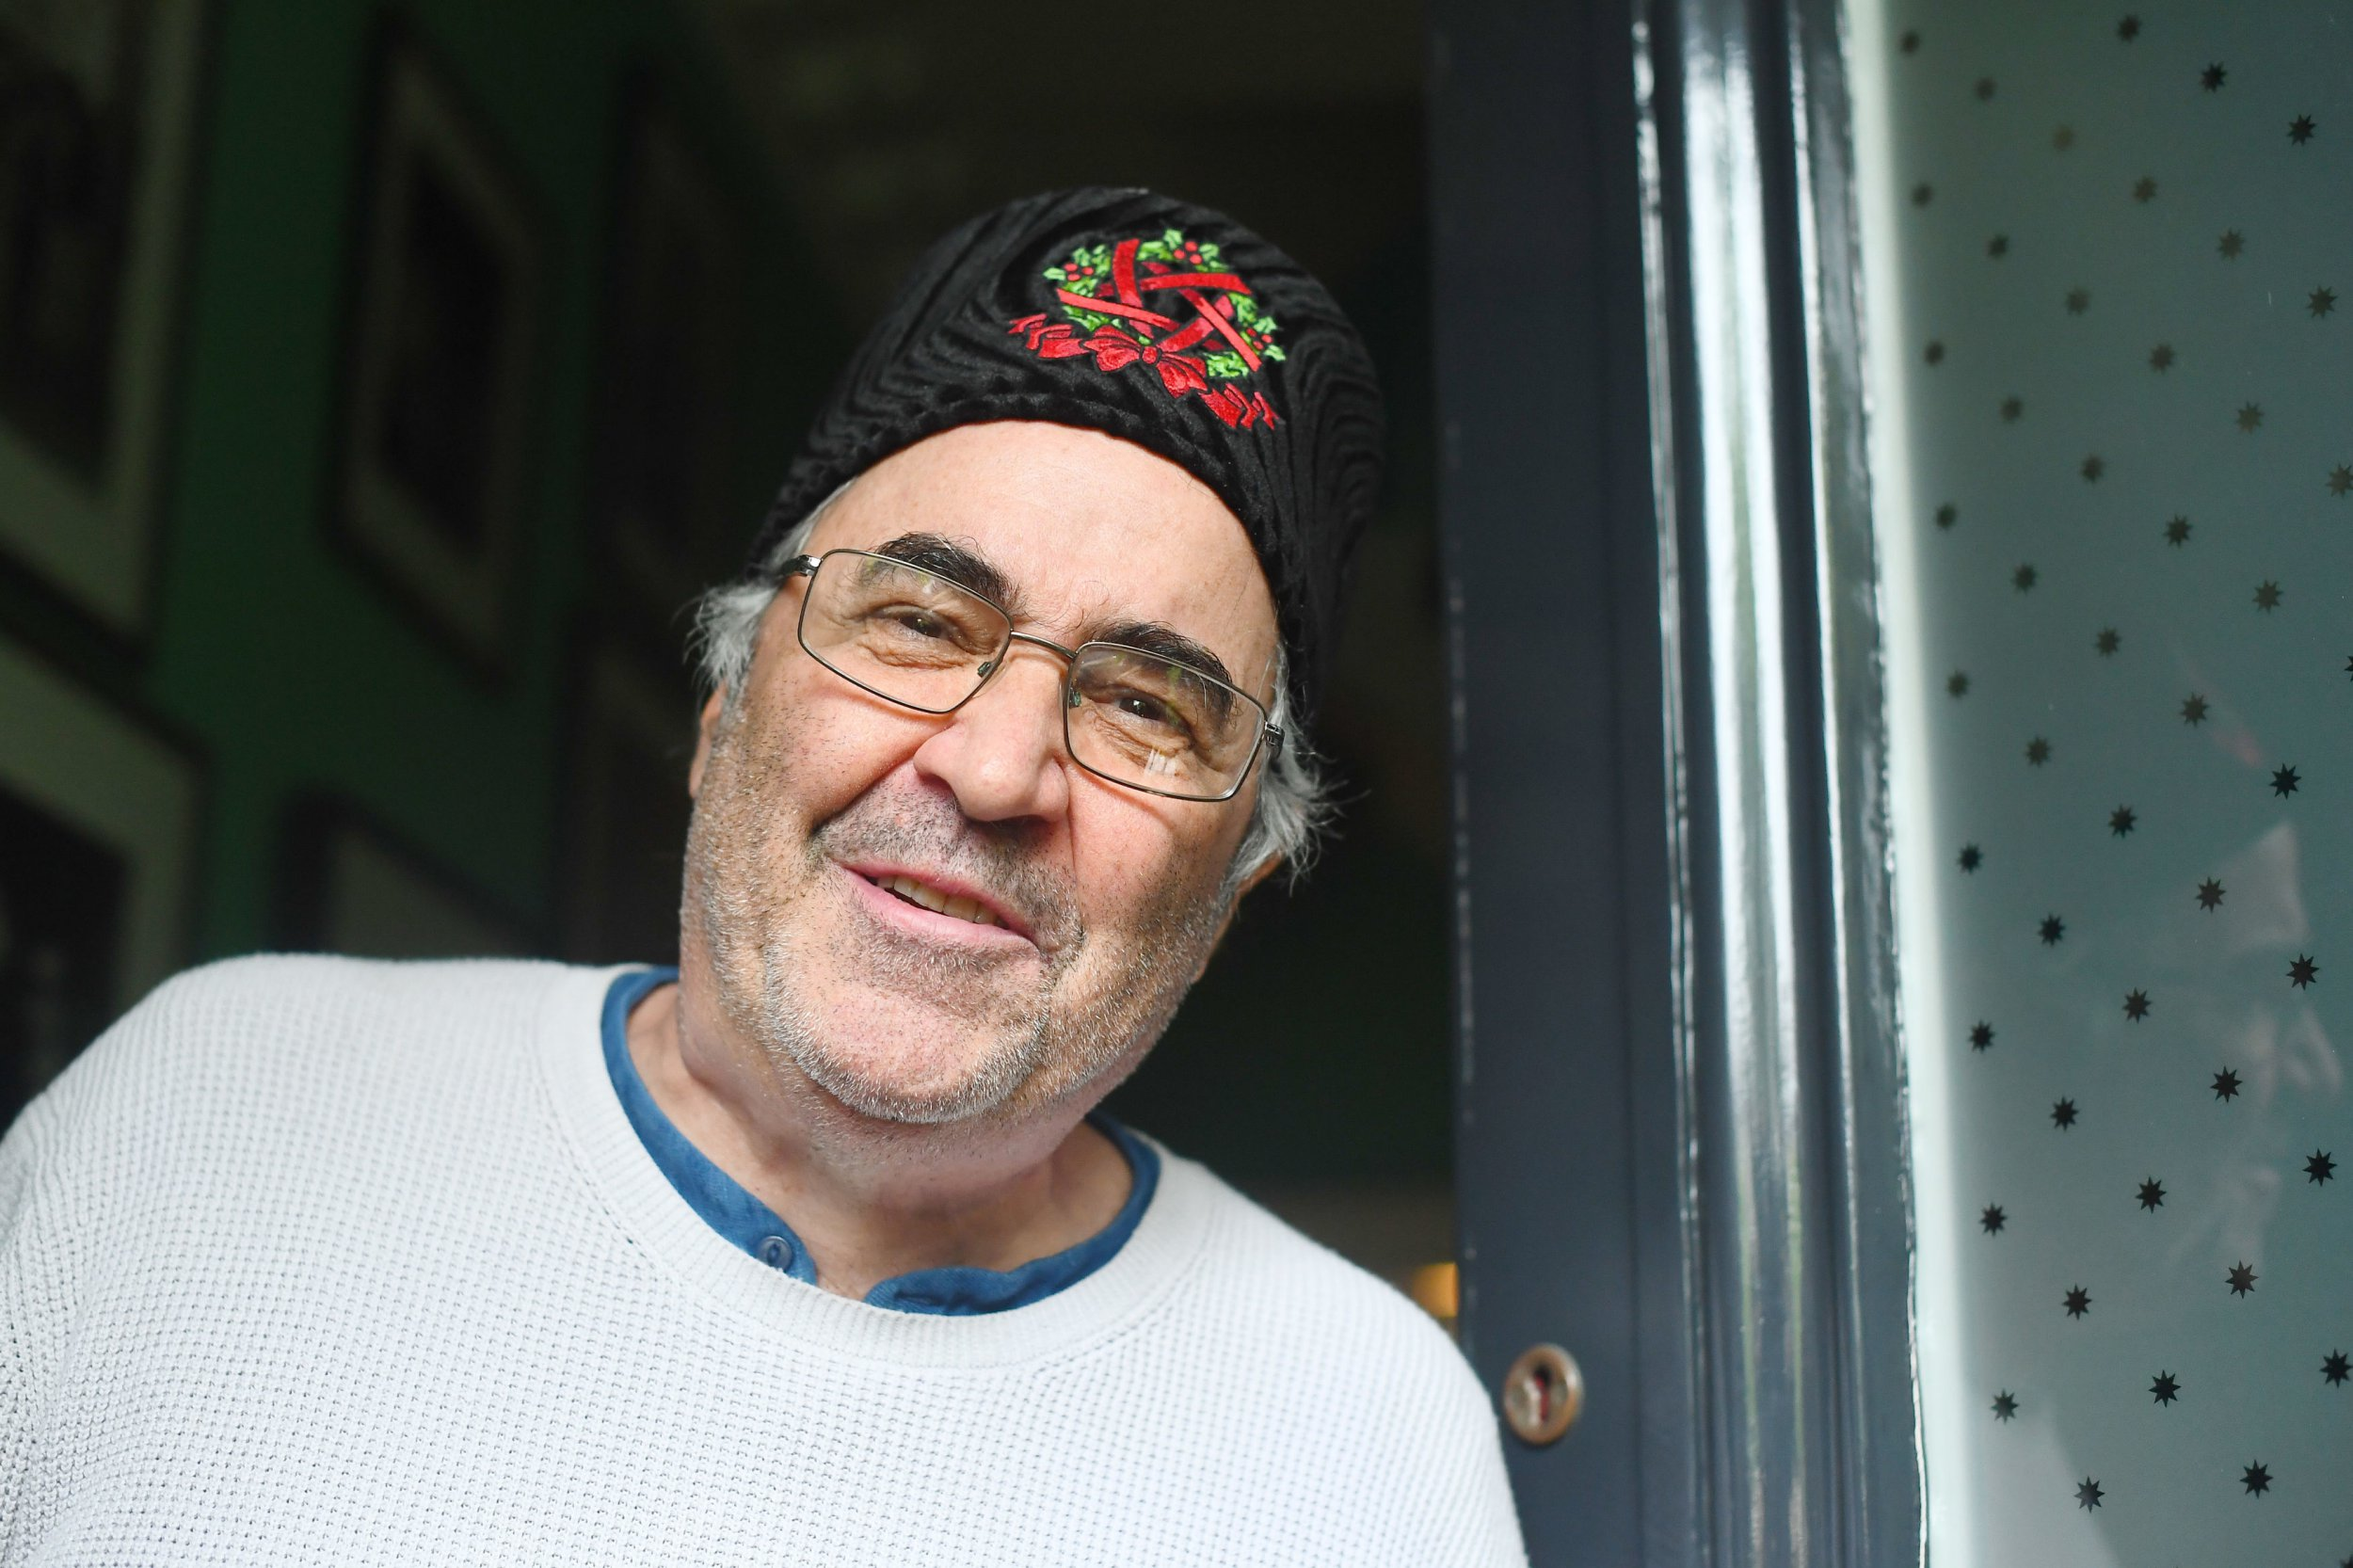 Danny Baker looks animated on doorstep as he insists Royal Baby tweet was 'about class, not race'